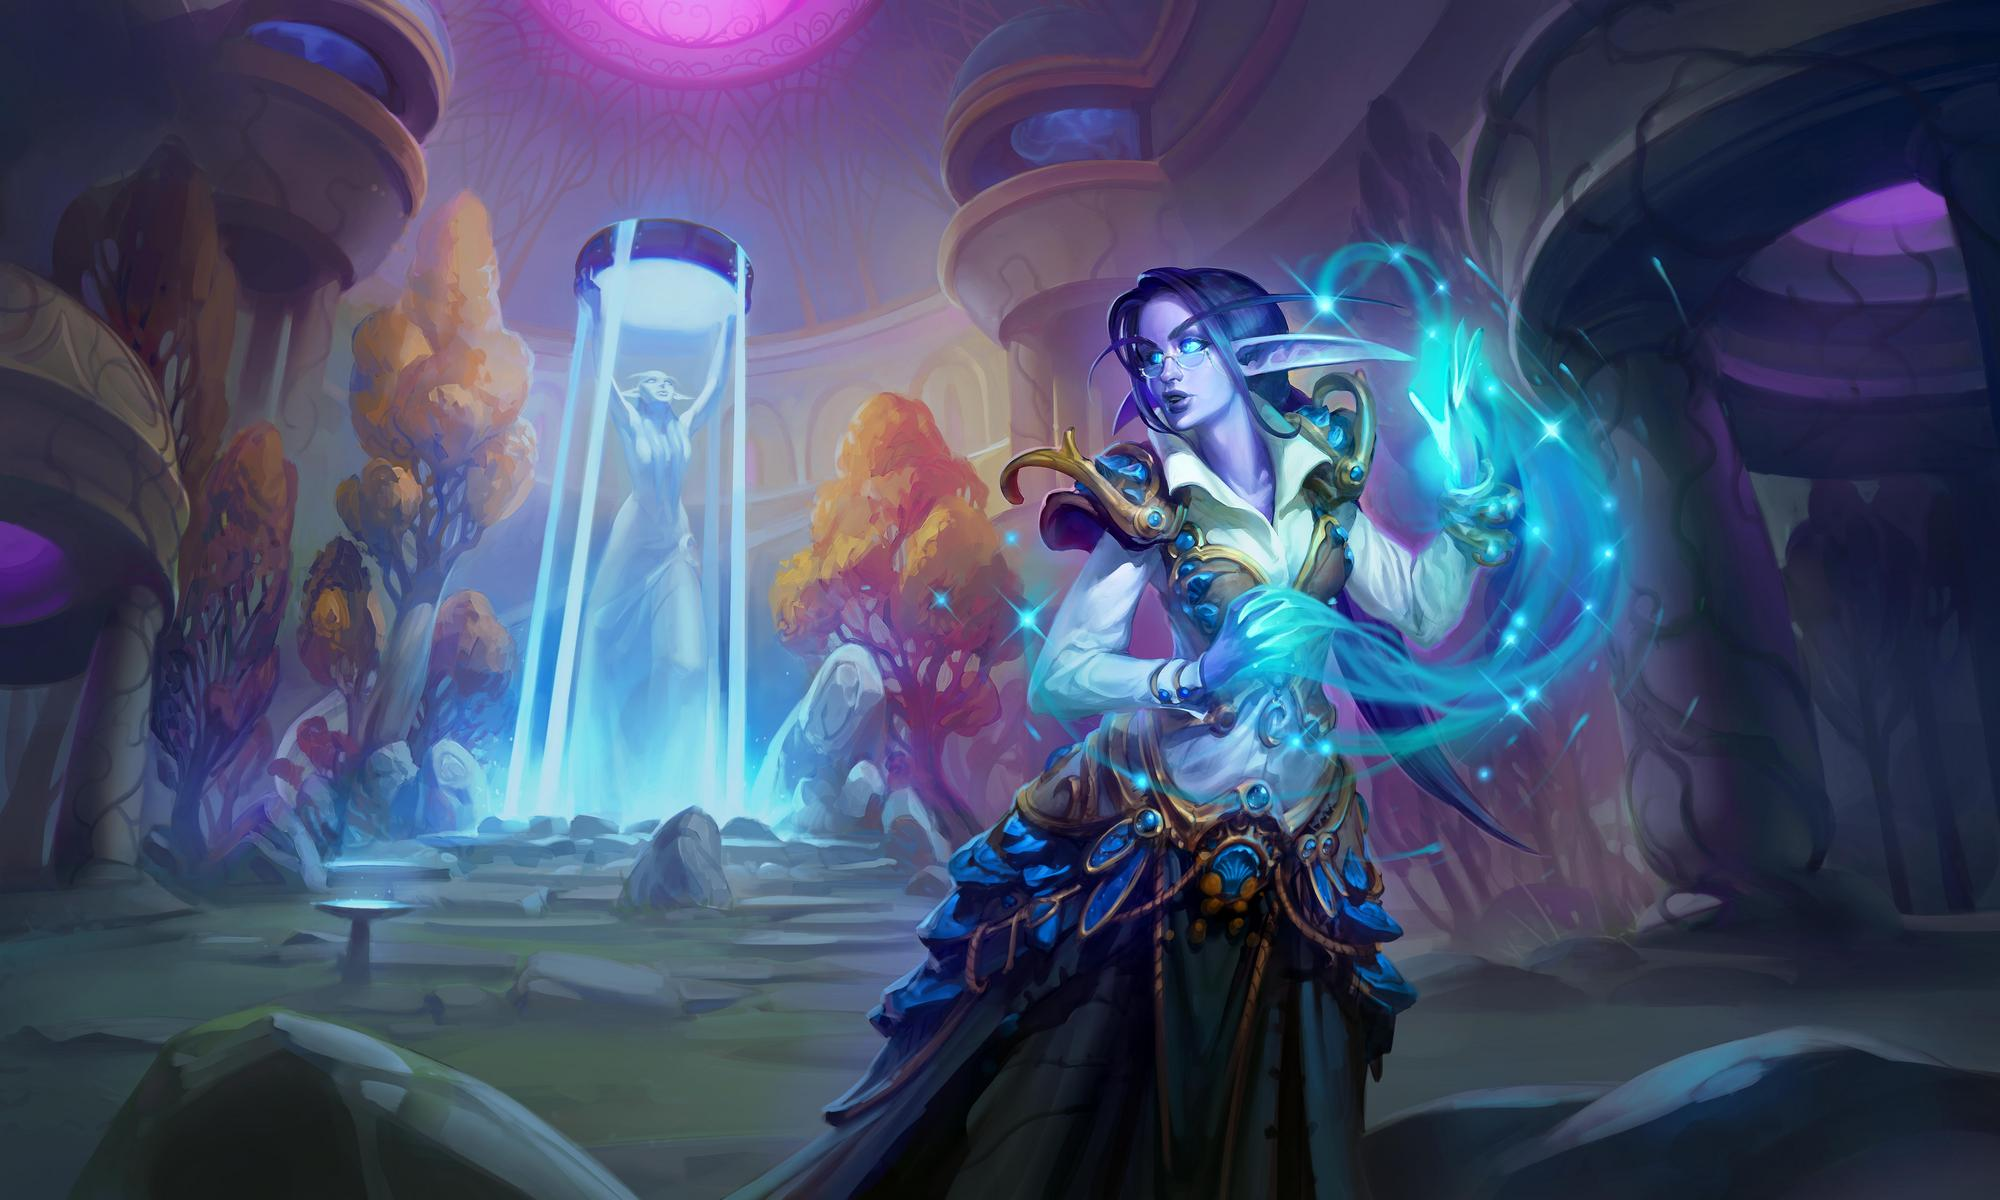 Hearthstone's new campaign brings dual classes to a wild setting